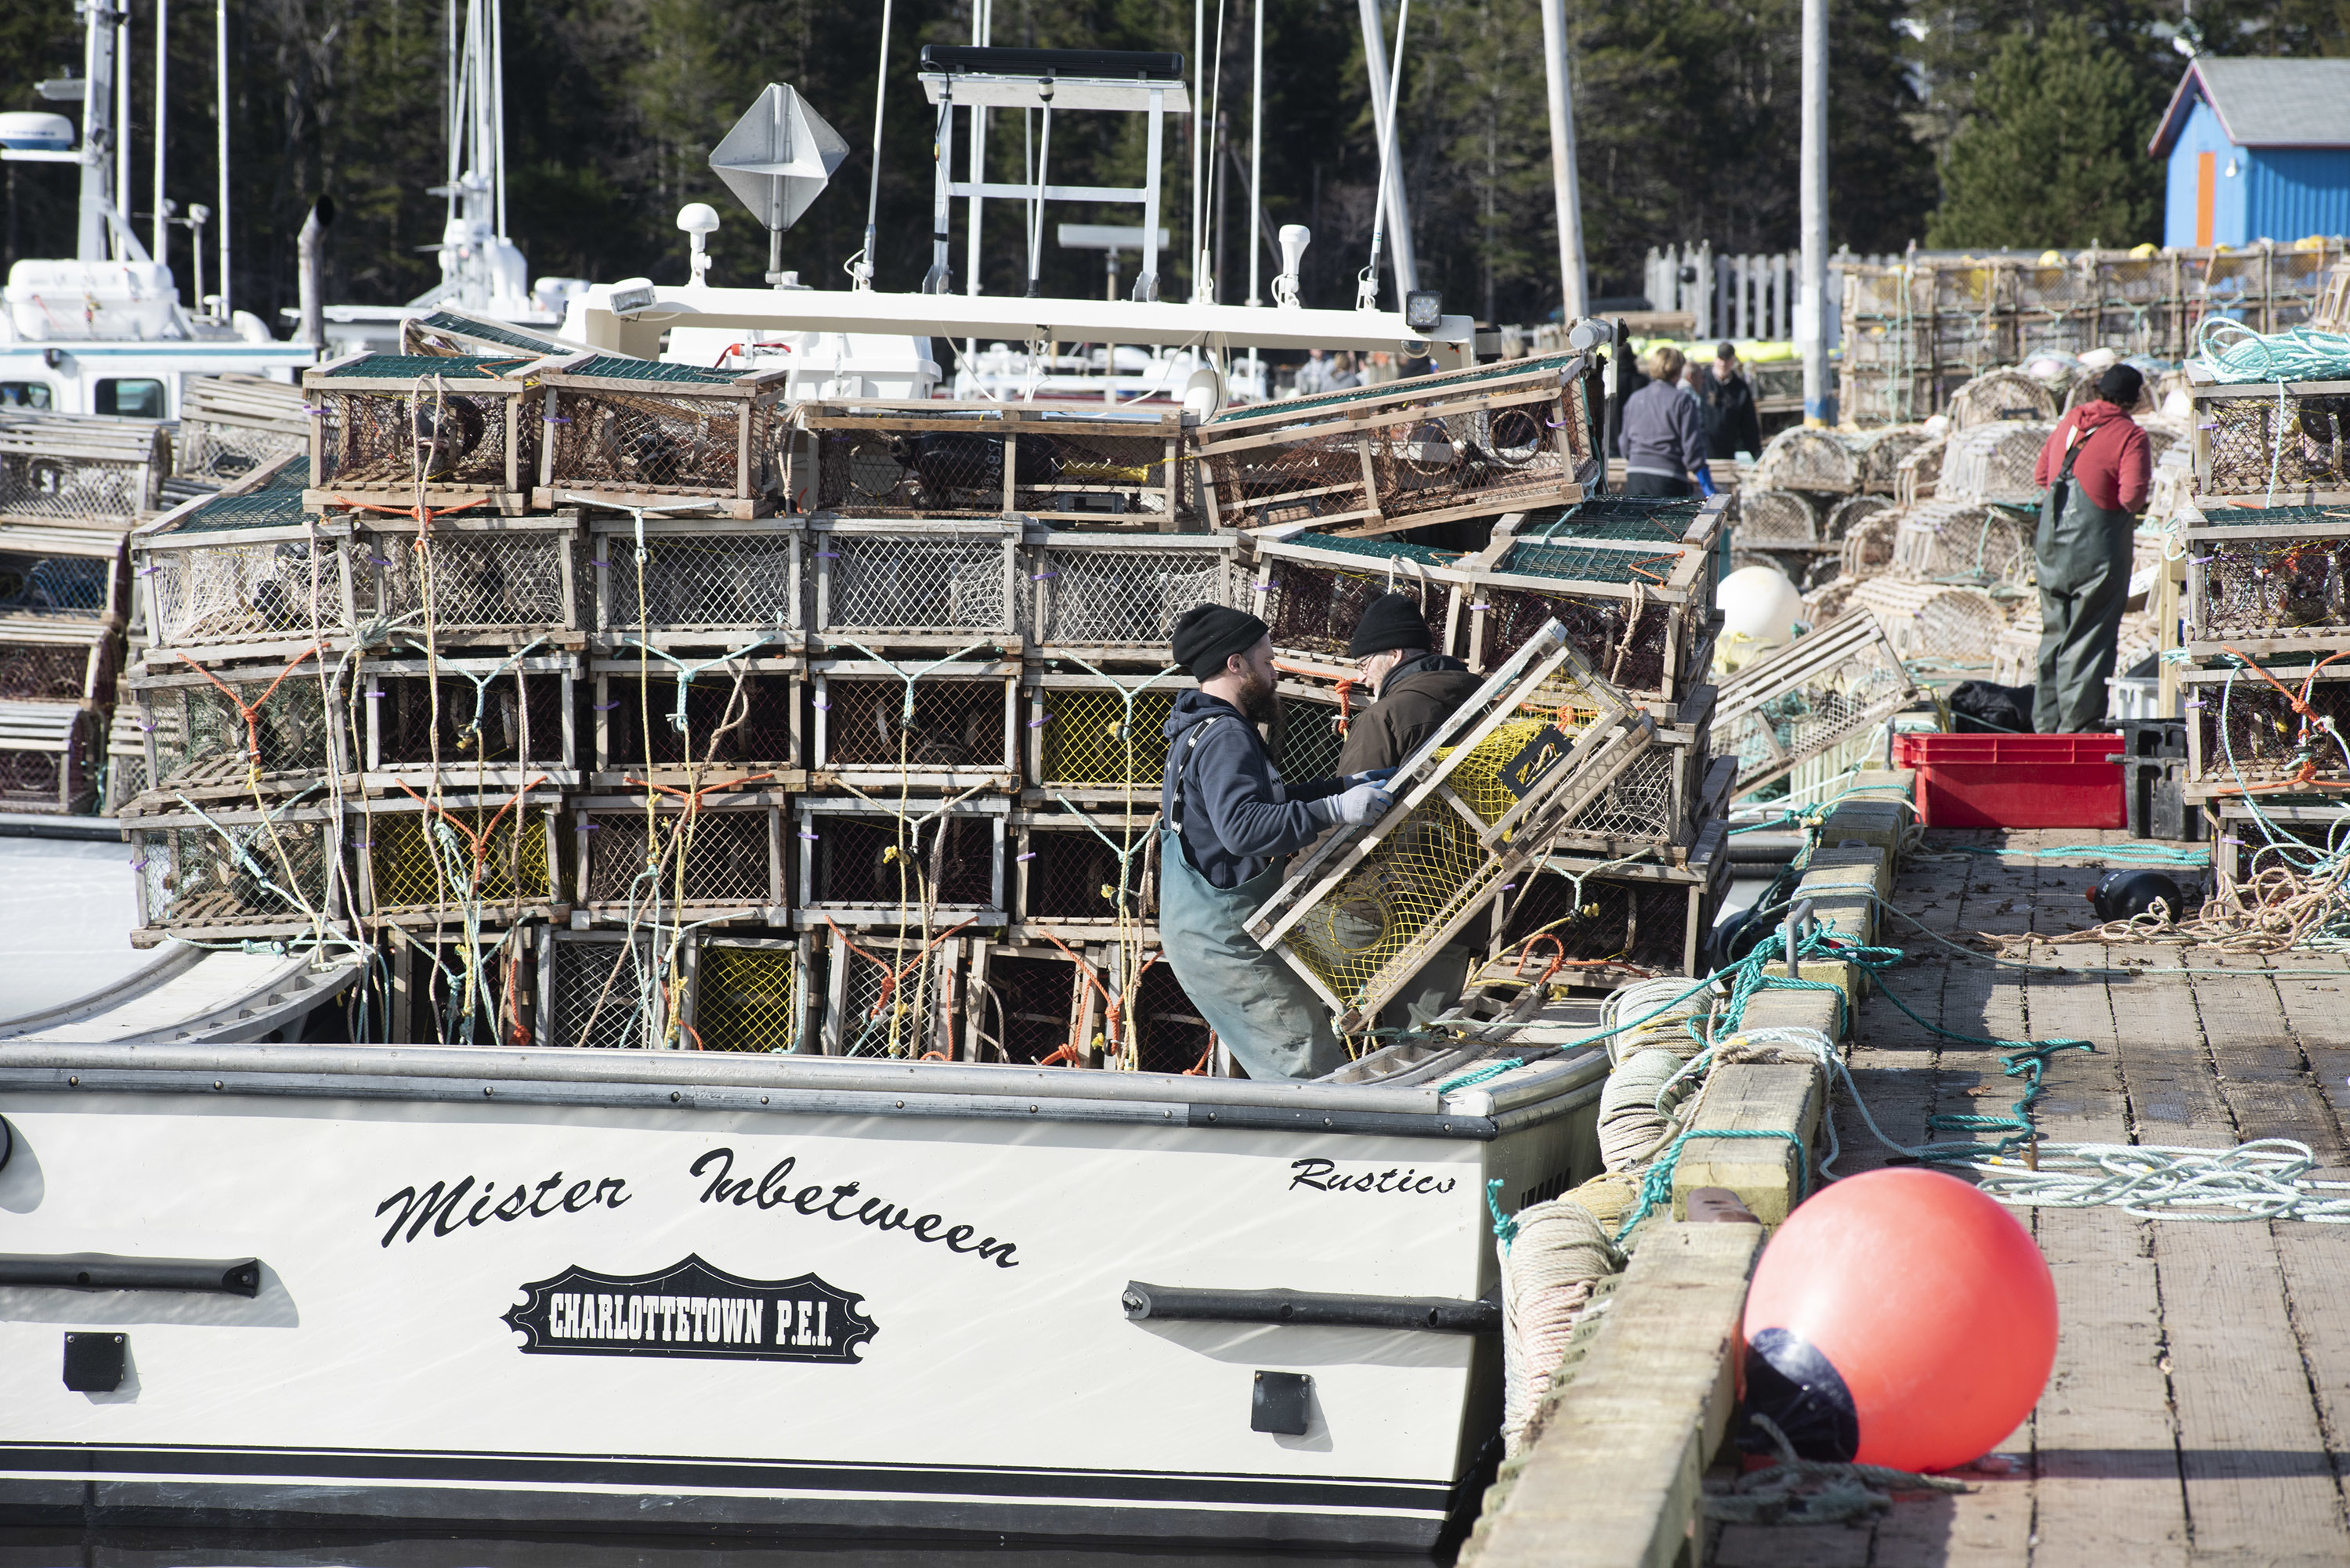 The wharf may look like it is in chaos, but looks are deceiving. The fishermen have been doing this for many years and there are rarely mistakes made. (Brian McInnis)